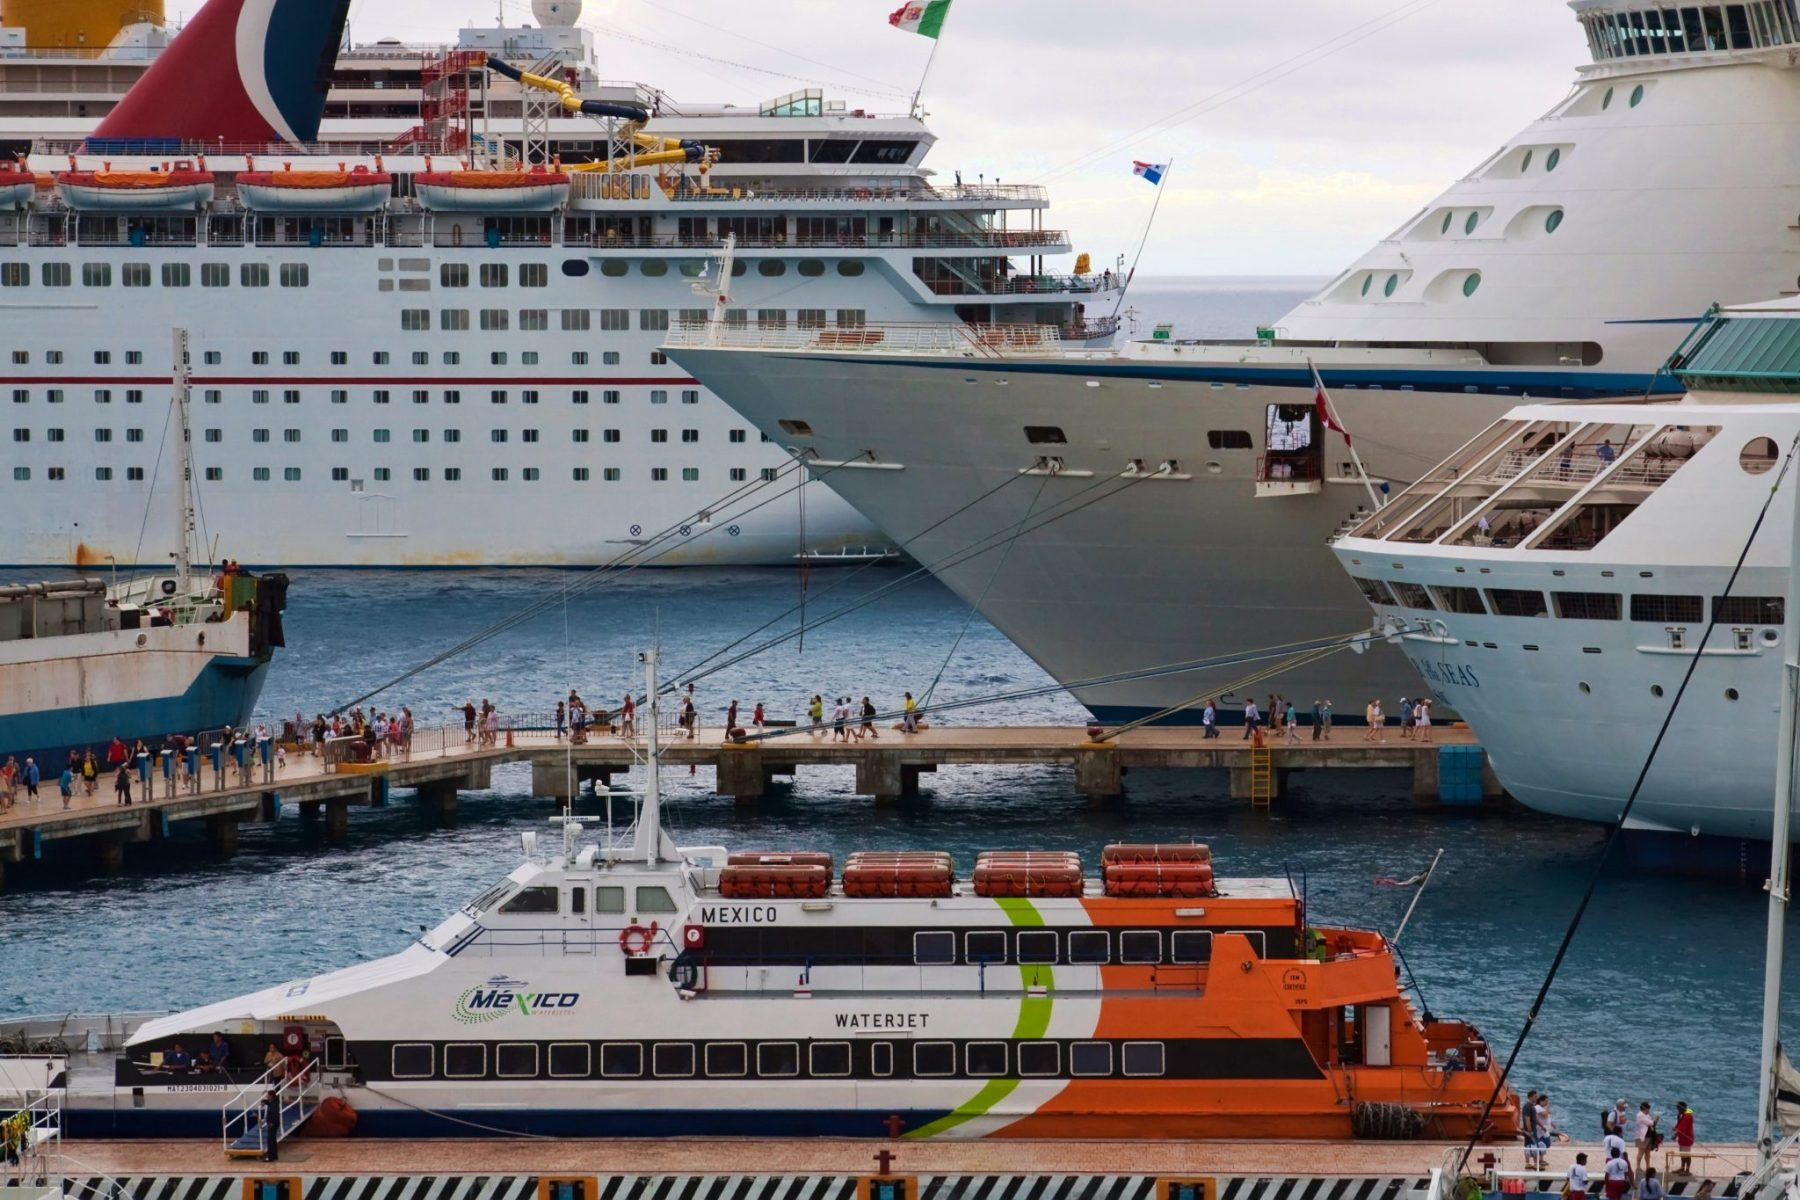 Cruise ships in Cozumel Mexico